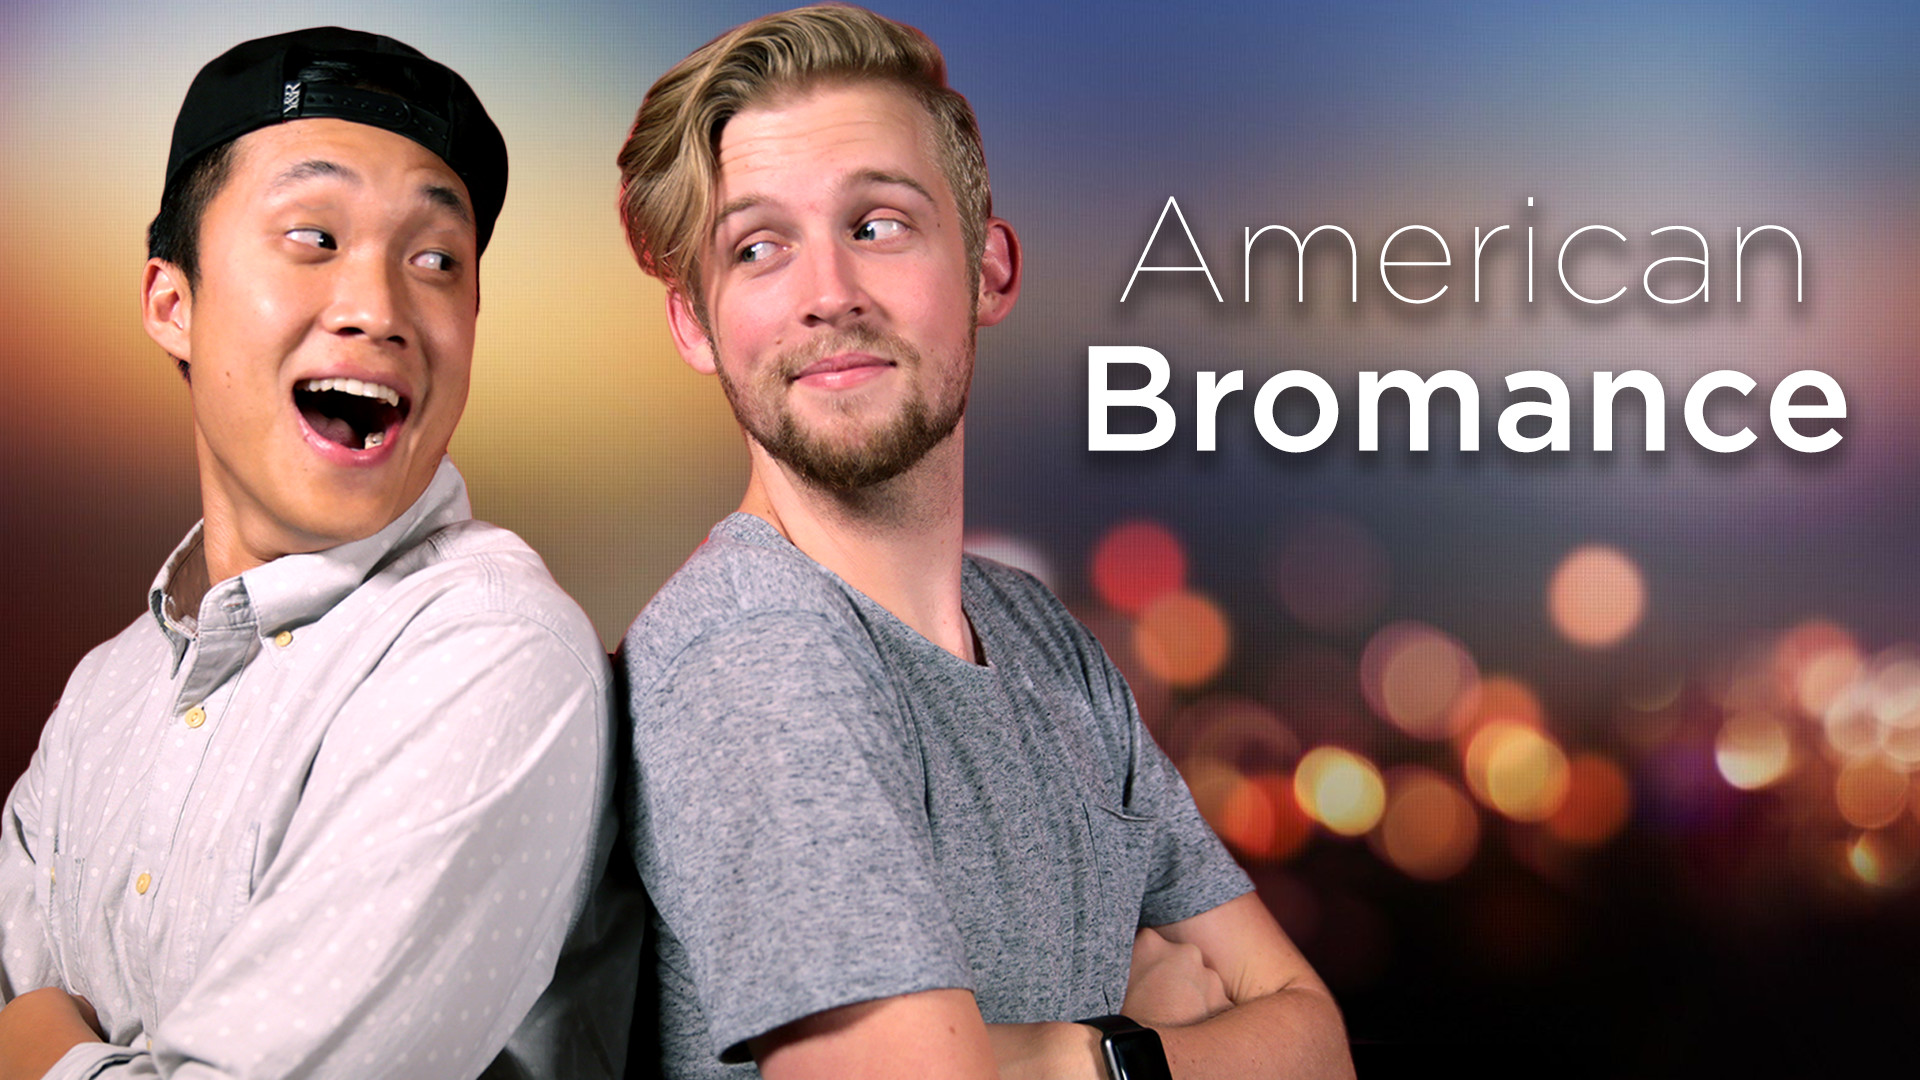 American Bromance - Director | Co-Writer | Producer | Shooter | Editor